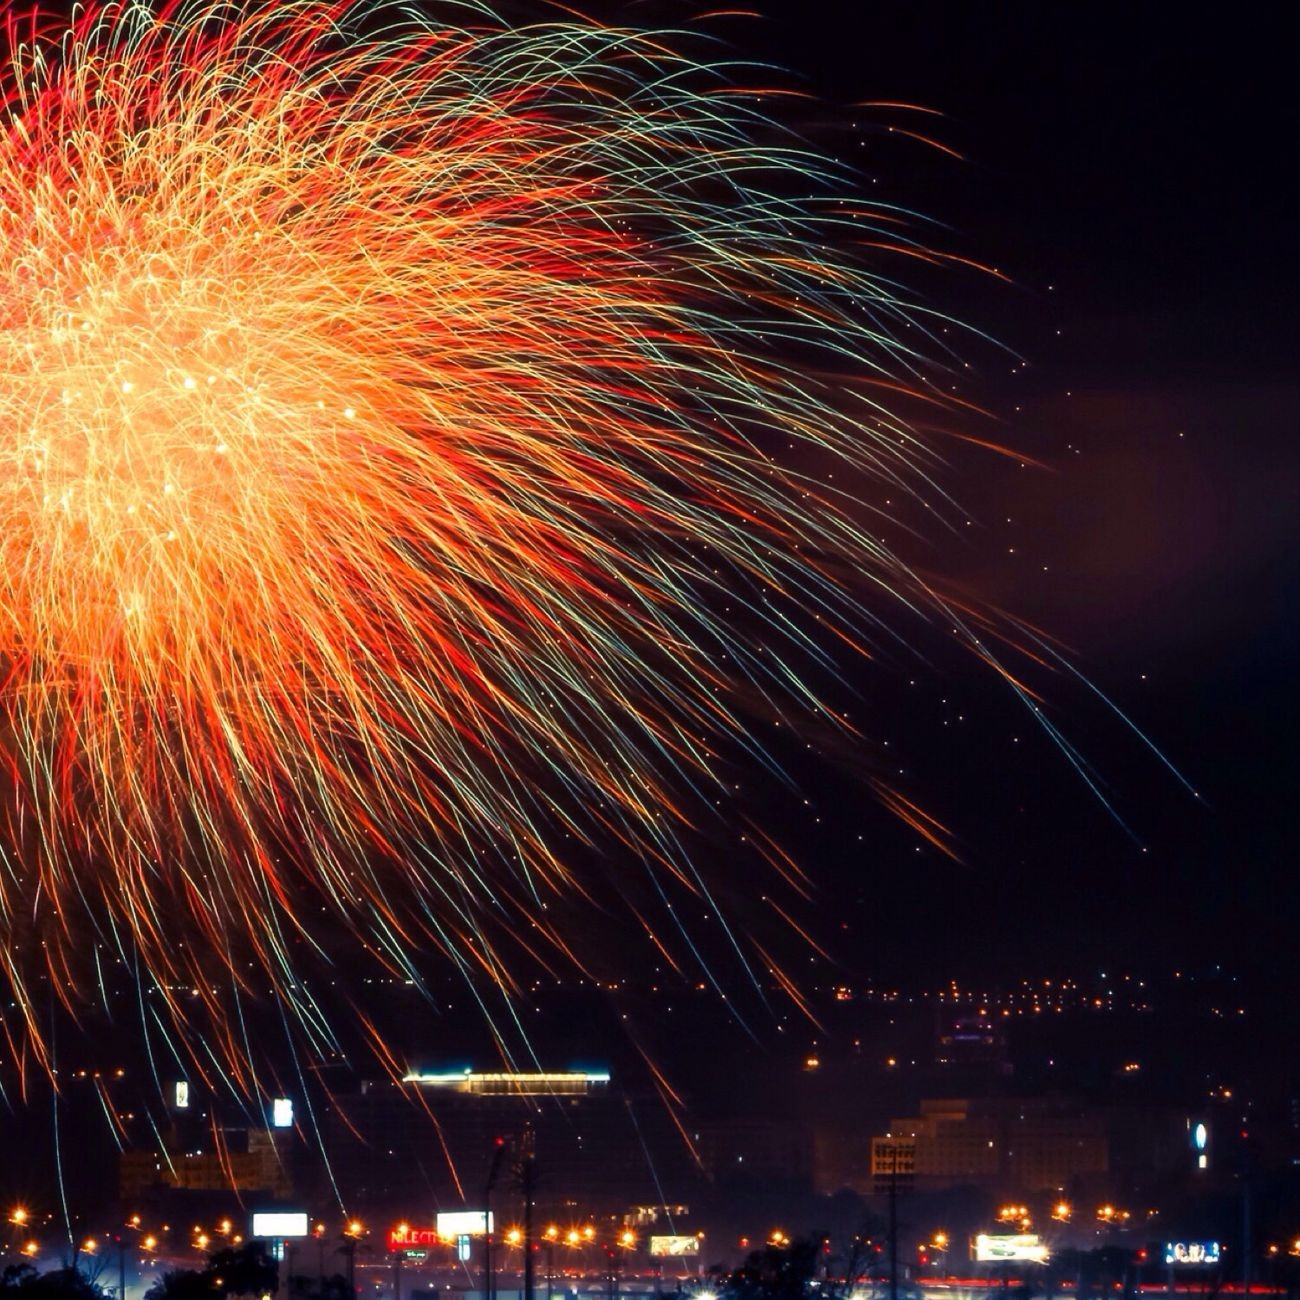 Capturing Movement Fireworks The Moment - 2015 EyeEm Awards